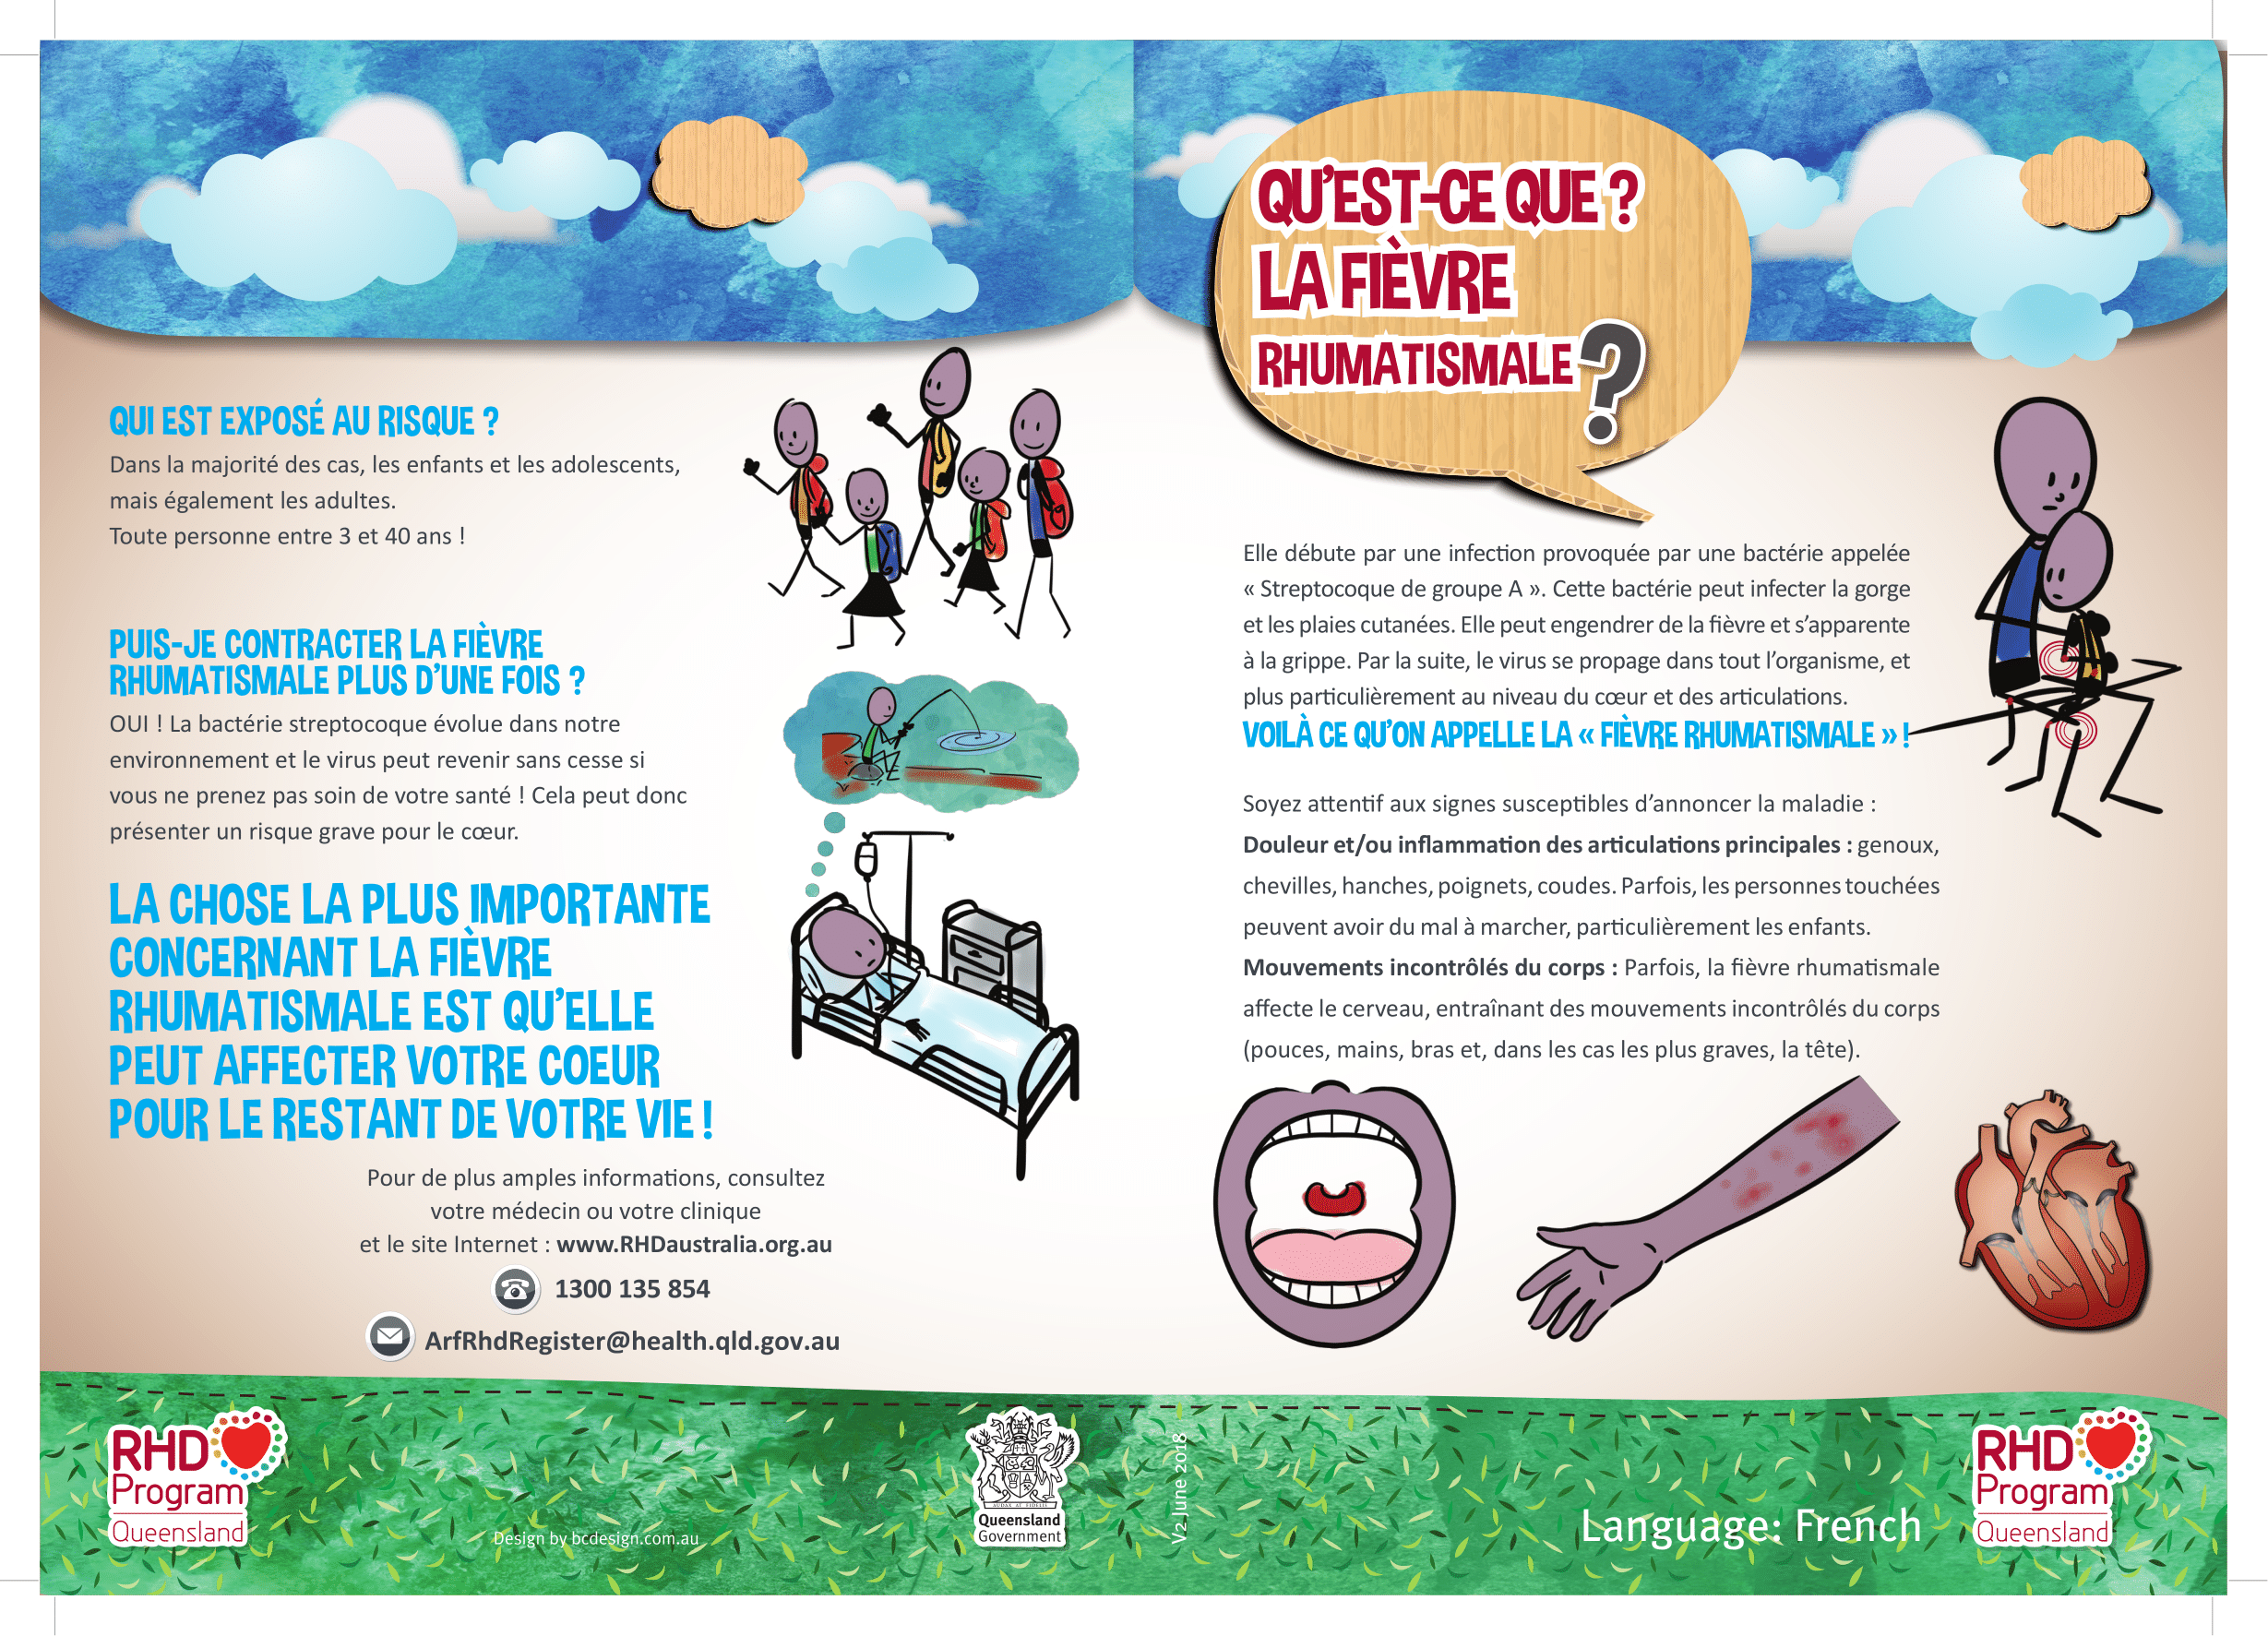 This poster presented in French, includes information about the causes, signs, symptoms and prevention of acute rheumatic fever. (A4 size)